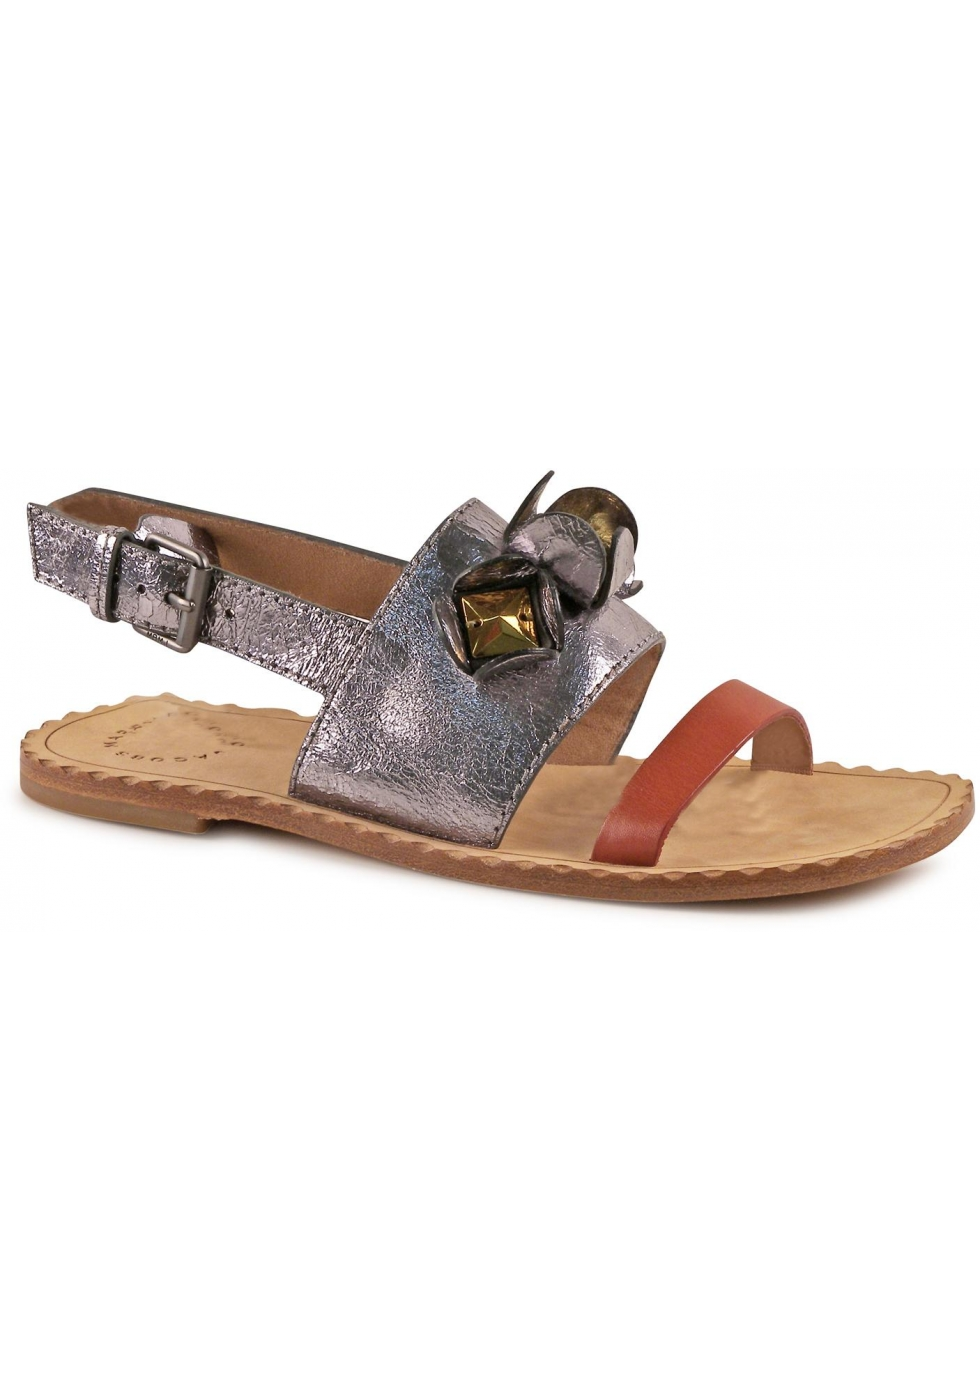 Marc Jacobs Women Sandals In Multi Color Leather Italian